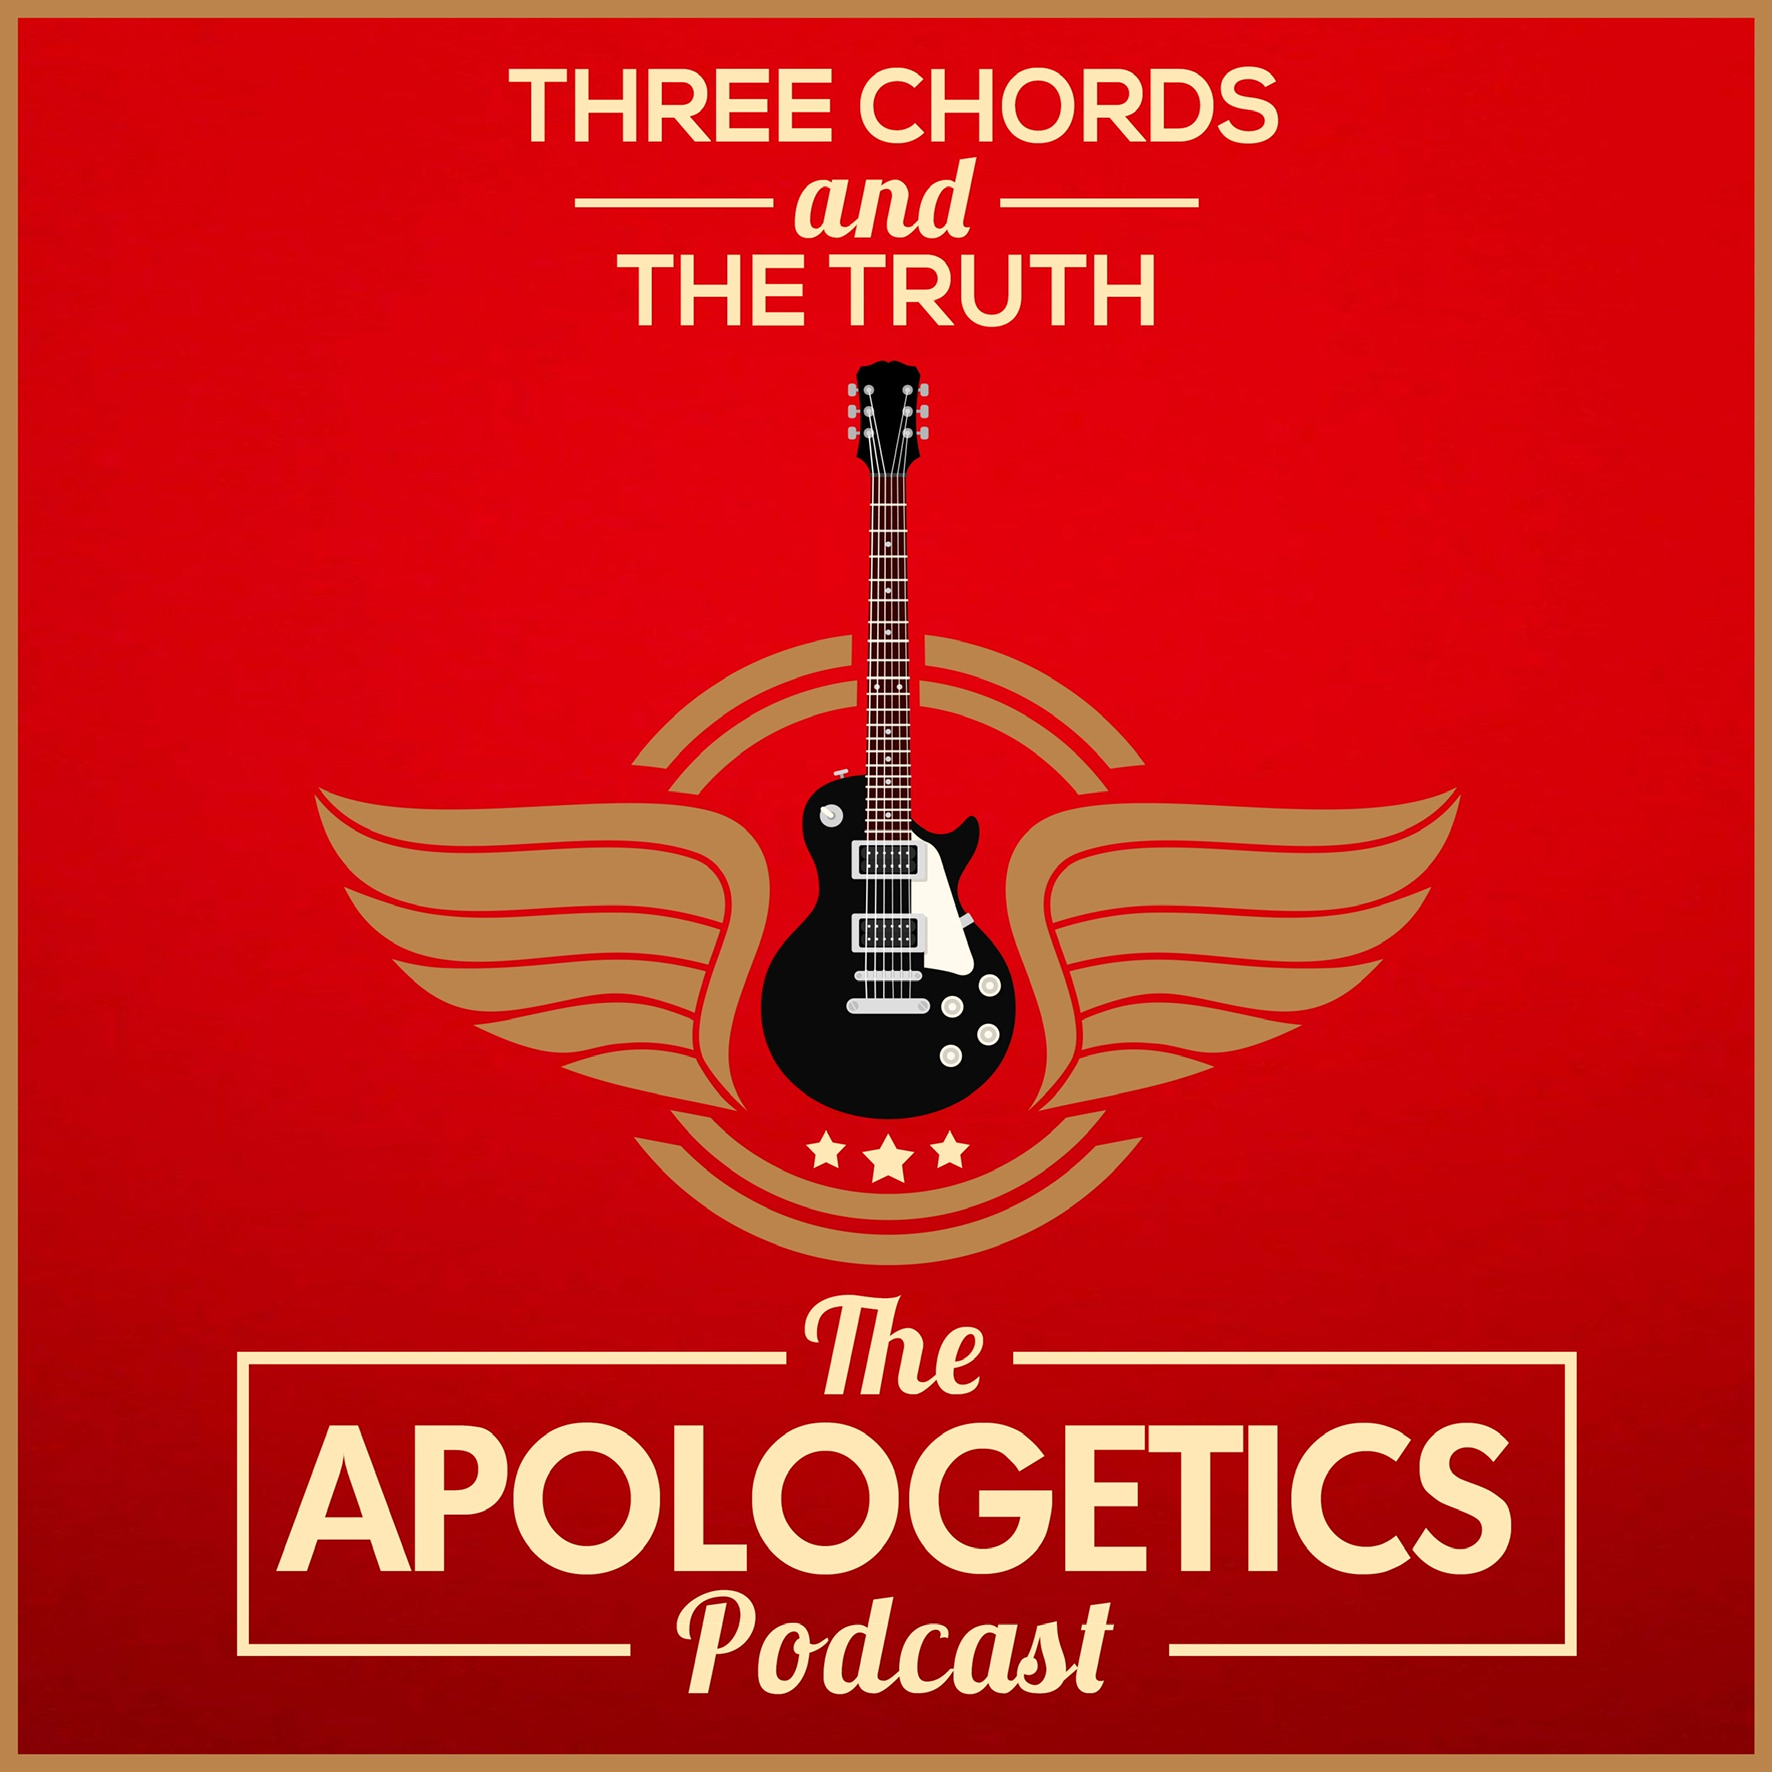 Three Chords and the Truth: The Apologetics Podcast